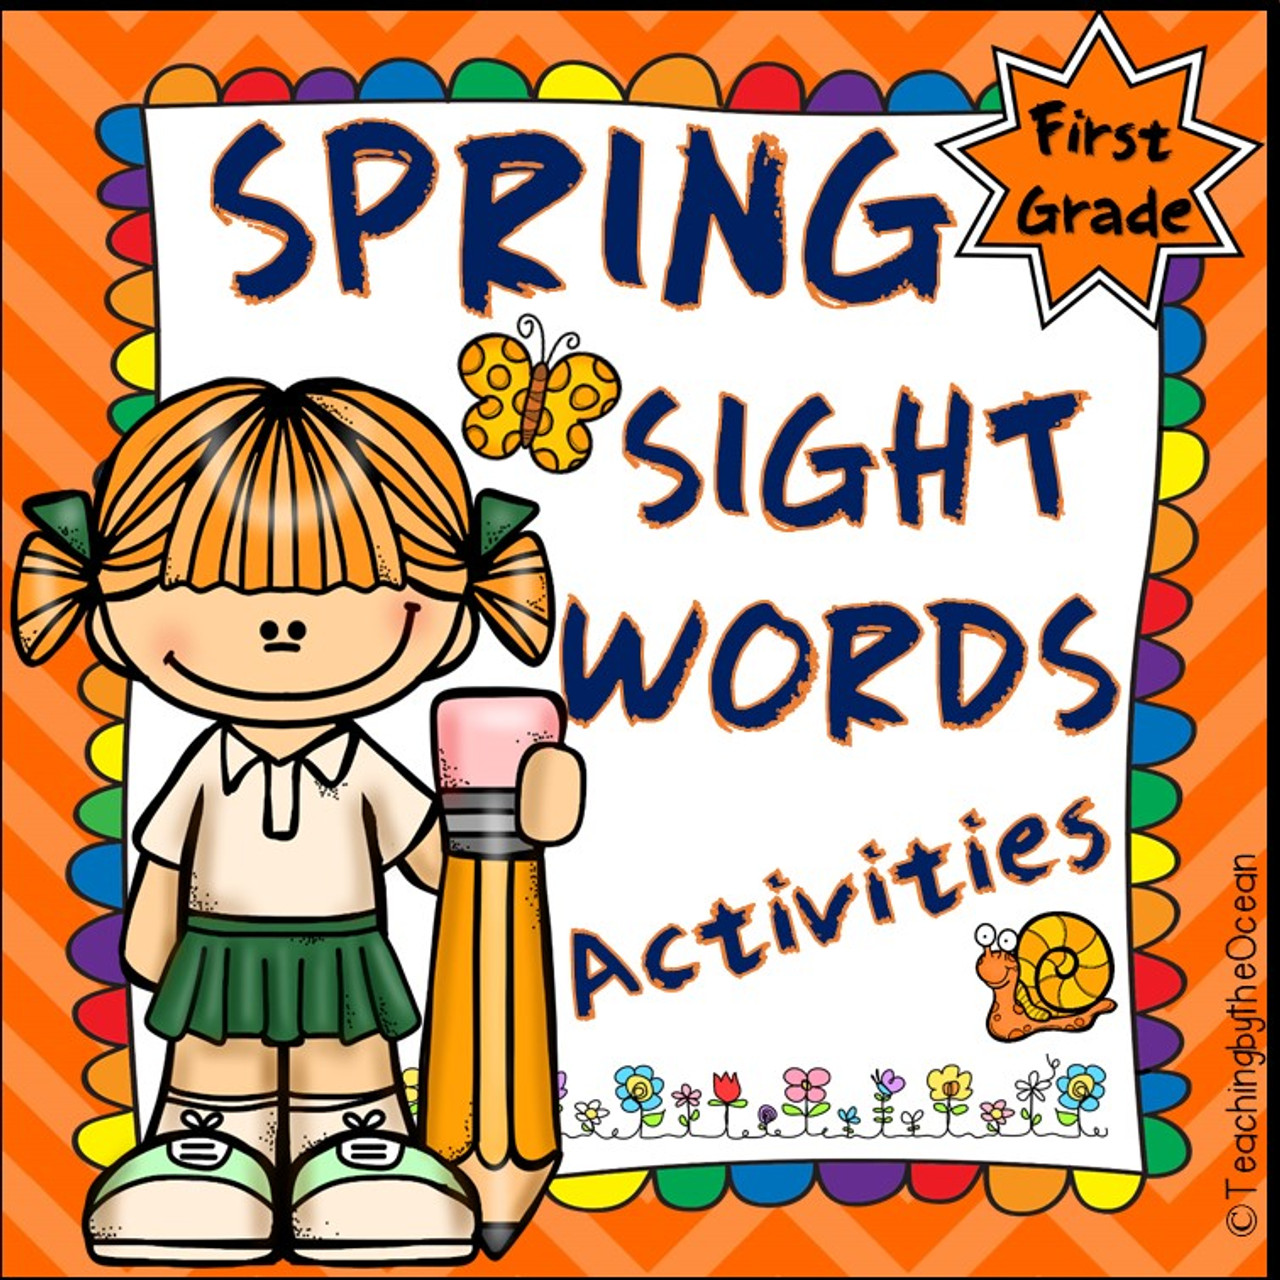 First Grade Sight Words Worksheets - Spring Themed - Amped Up Learning [ 1280 x 1280 Pixel ]